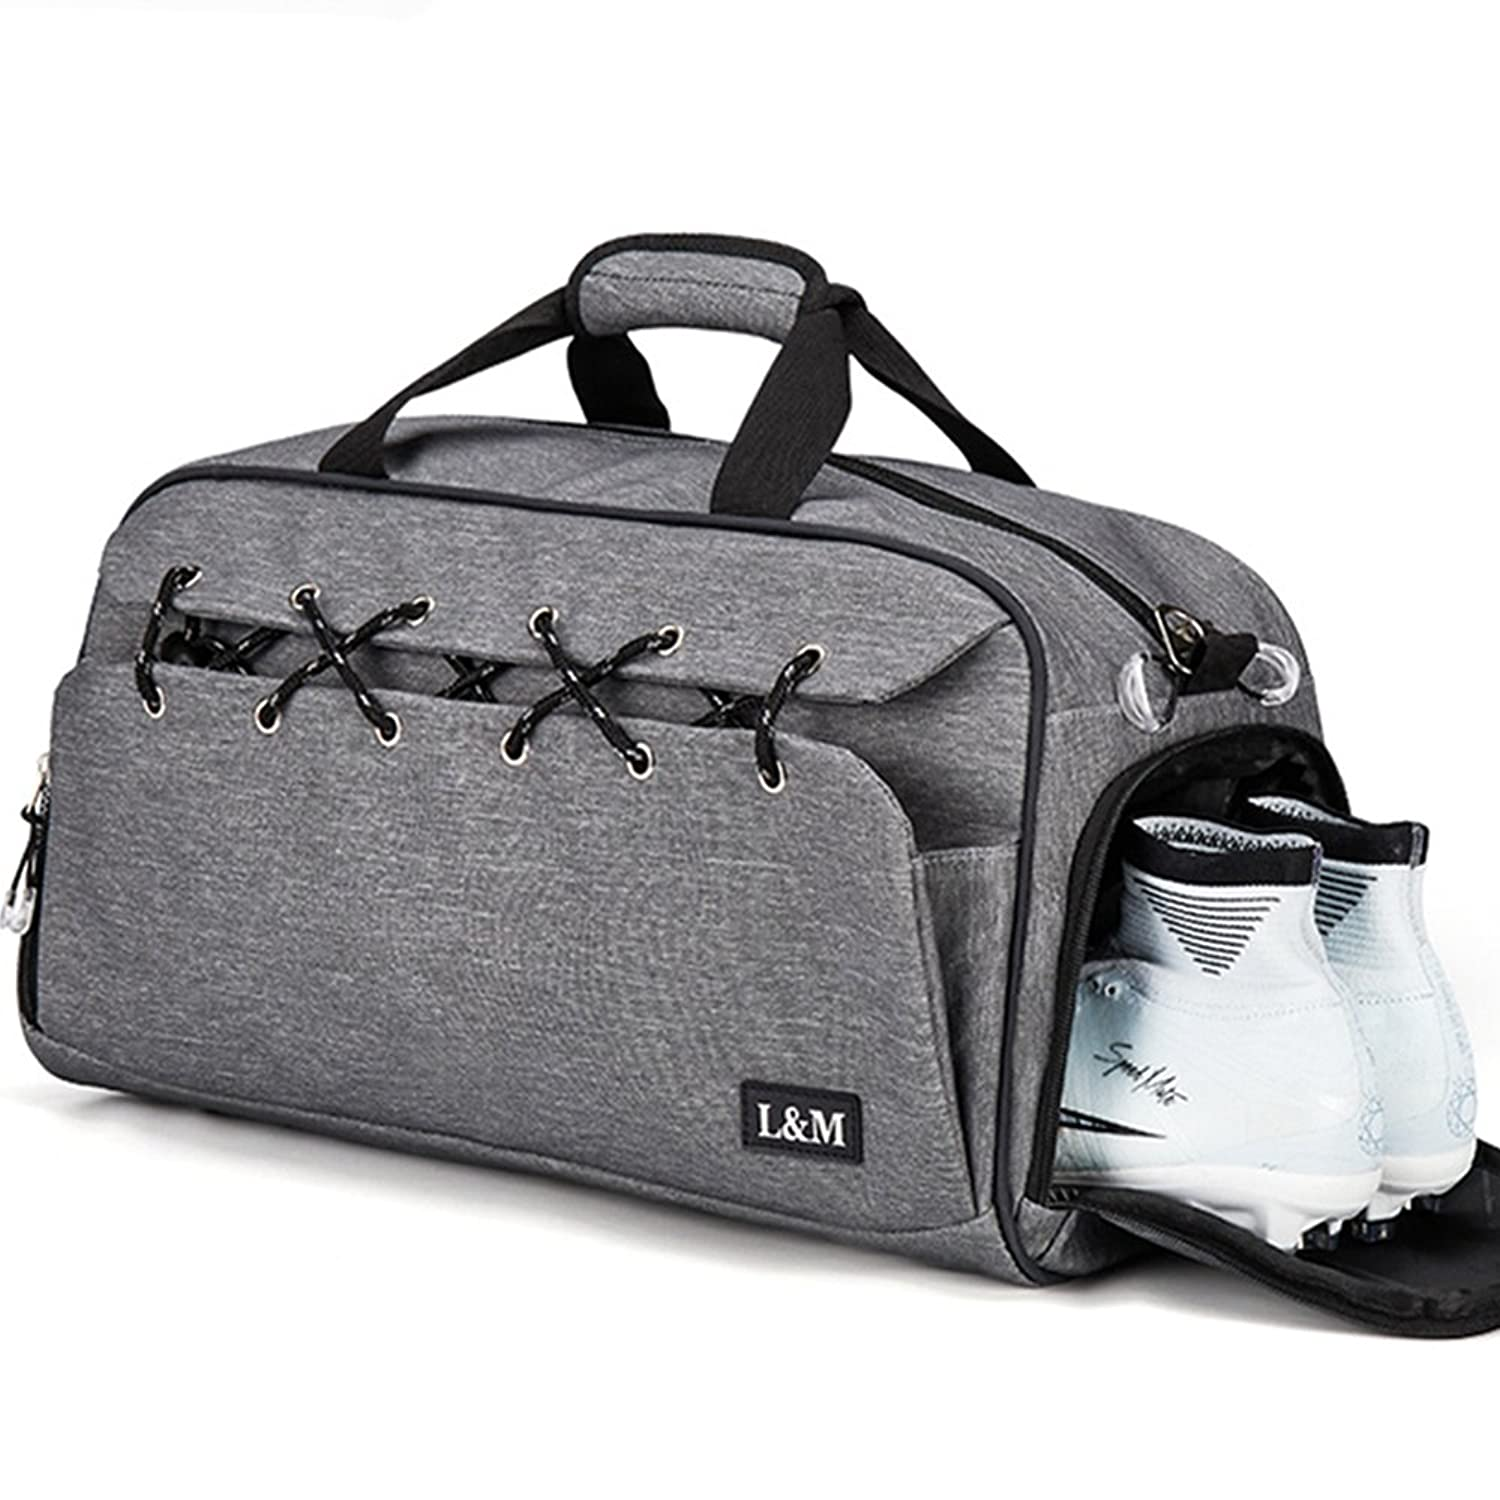 Gym Duffle Bag Sport Travel for Women Men with Shoe Compartment, Wet ... 2abcc0e688